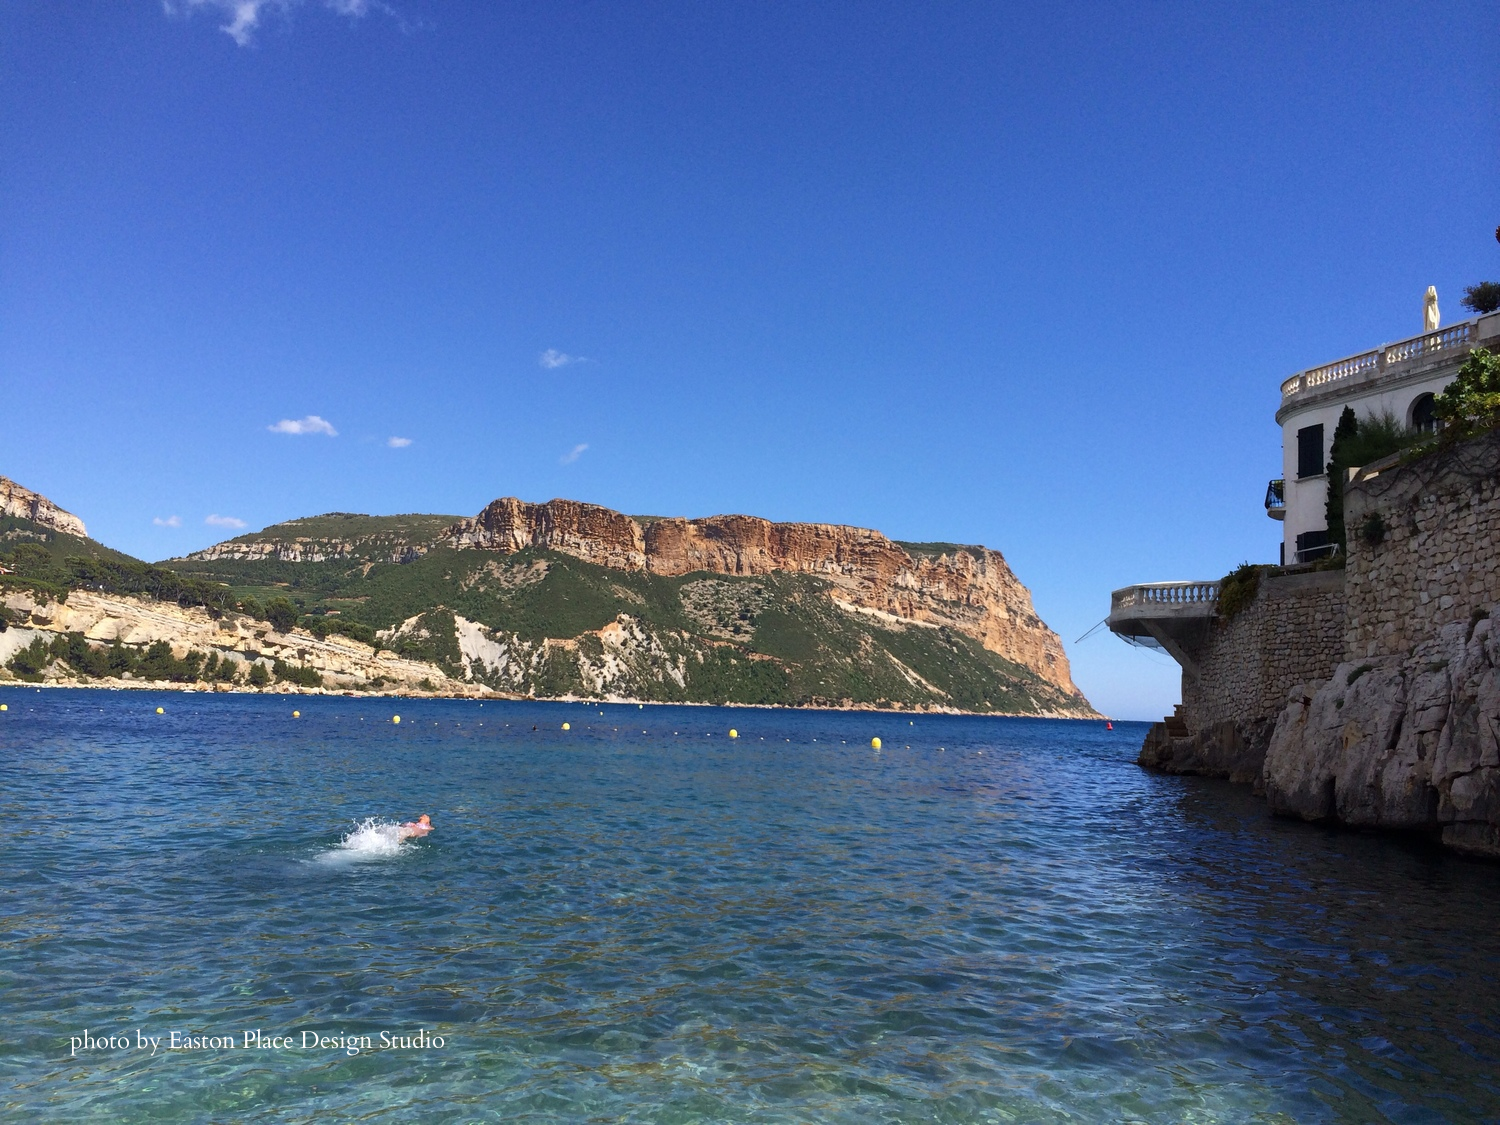 Cassis France photo by Easton Place Design Studio